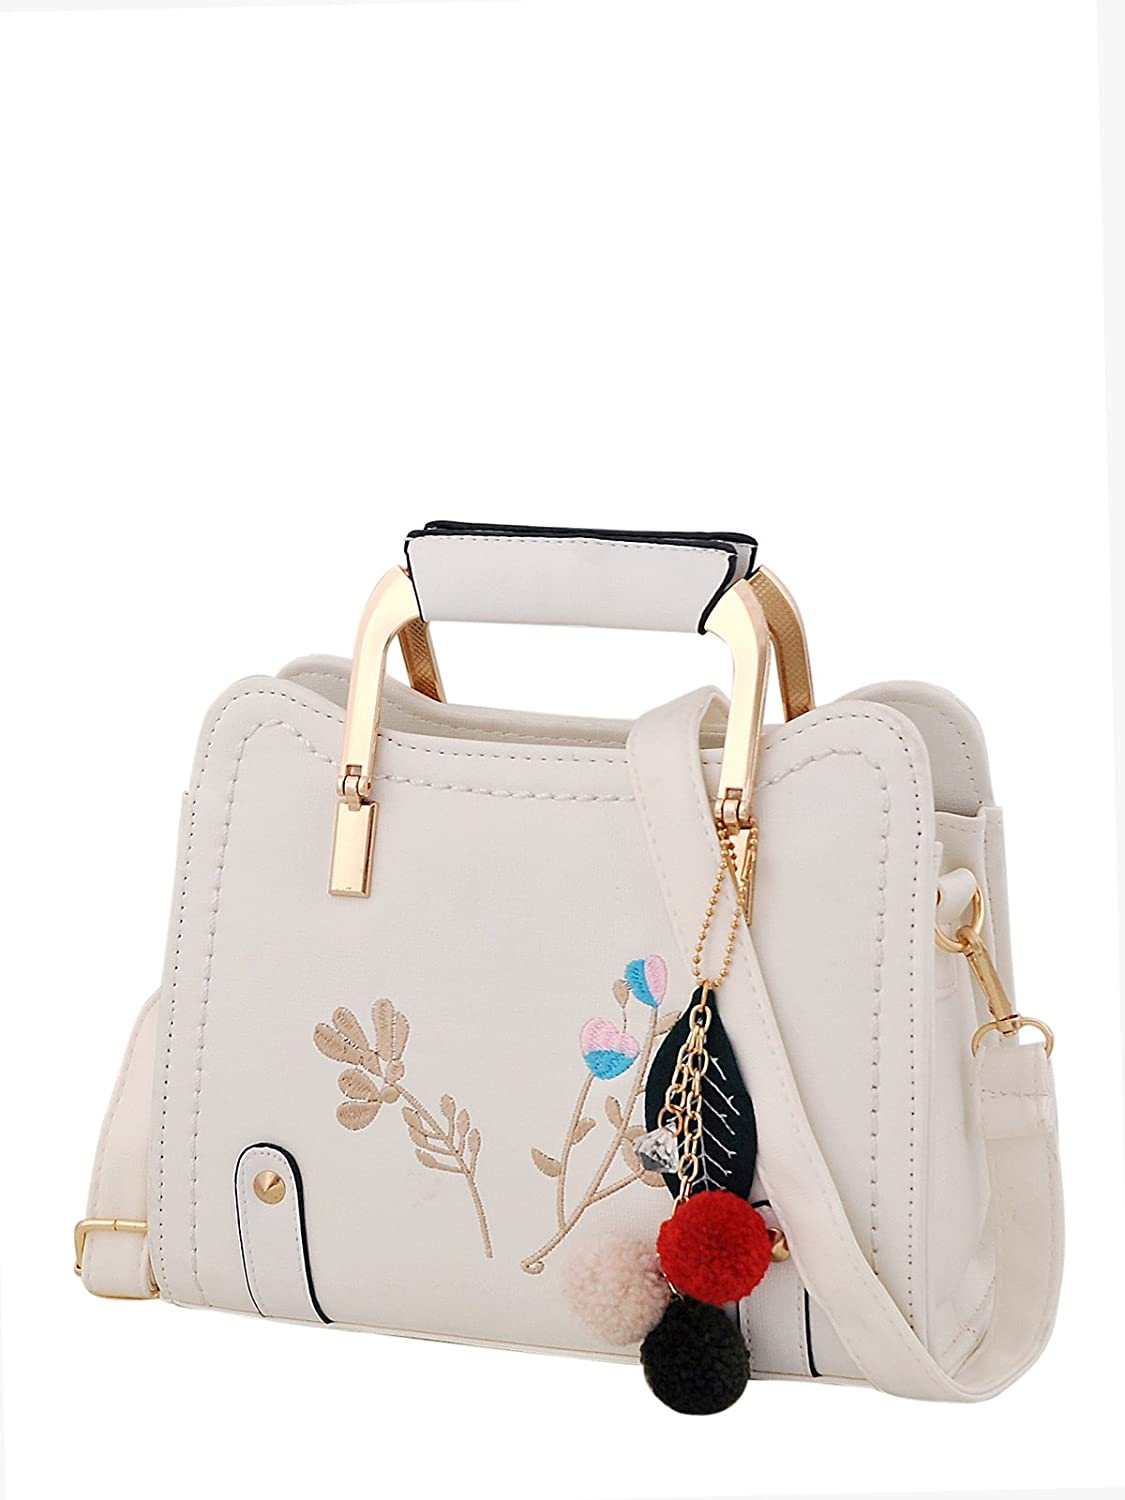 Mark & Keith Women White Handbag(MBG 0538 WH)